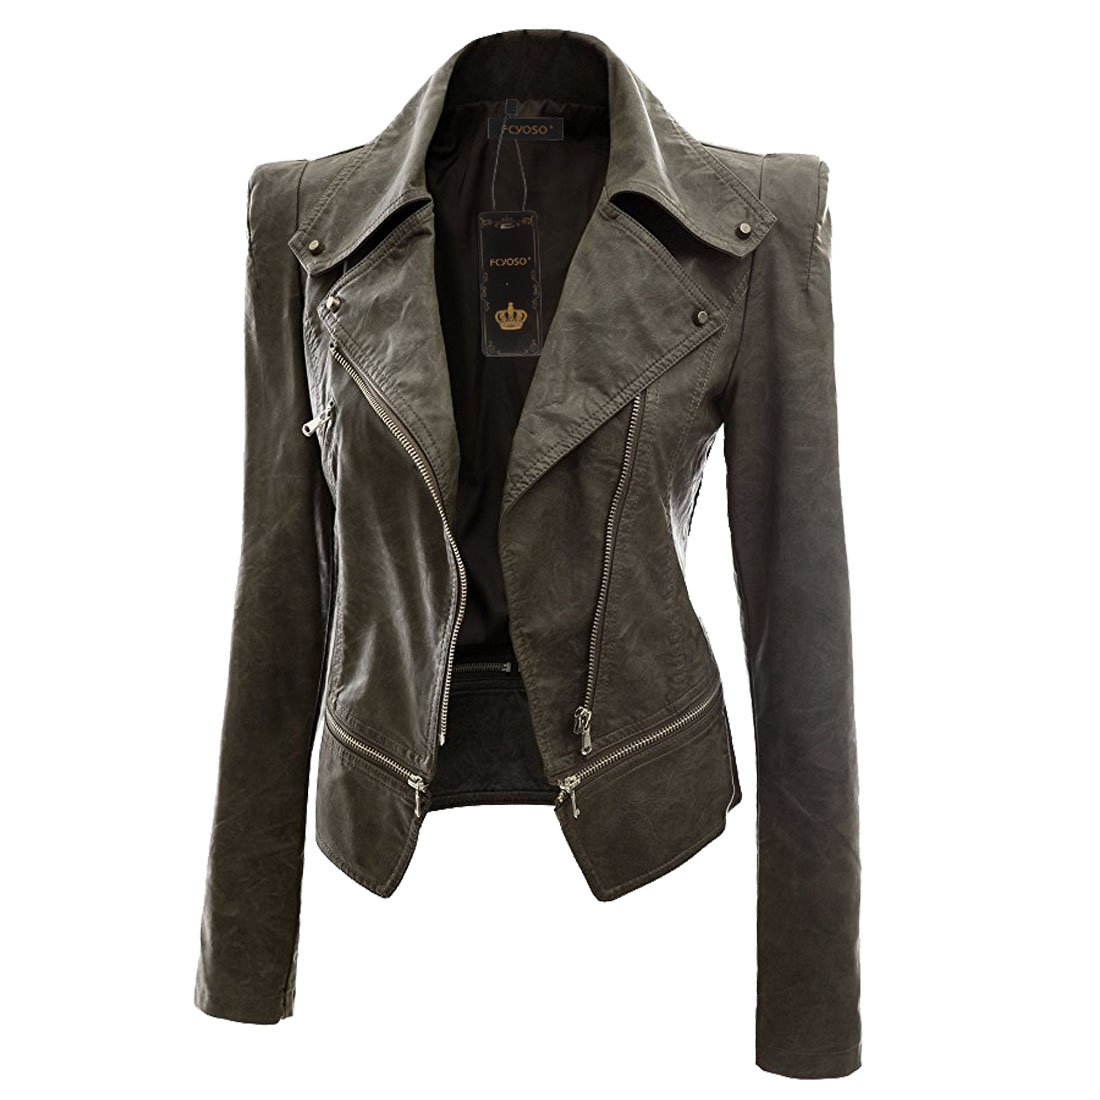 accd09be9 FCYOSO Women's Faux Leather Motorcycle Power Shoulder Jacket